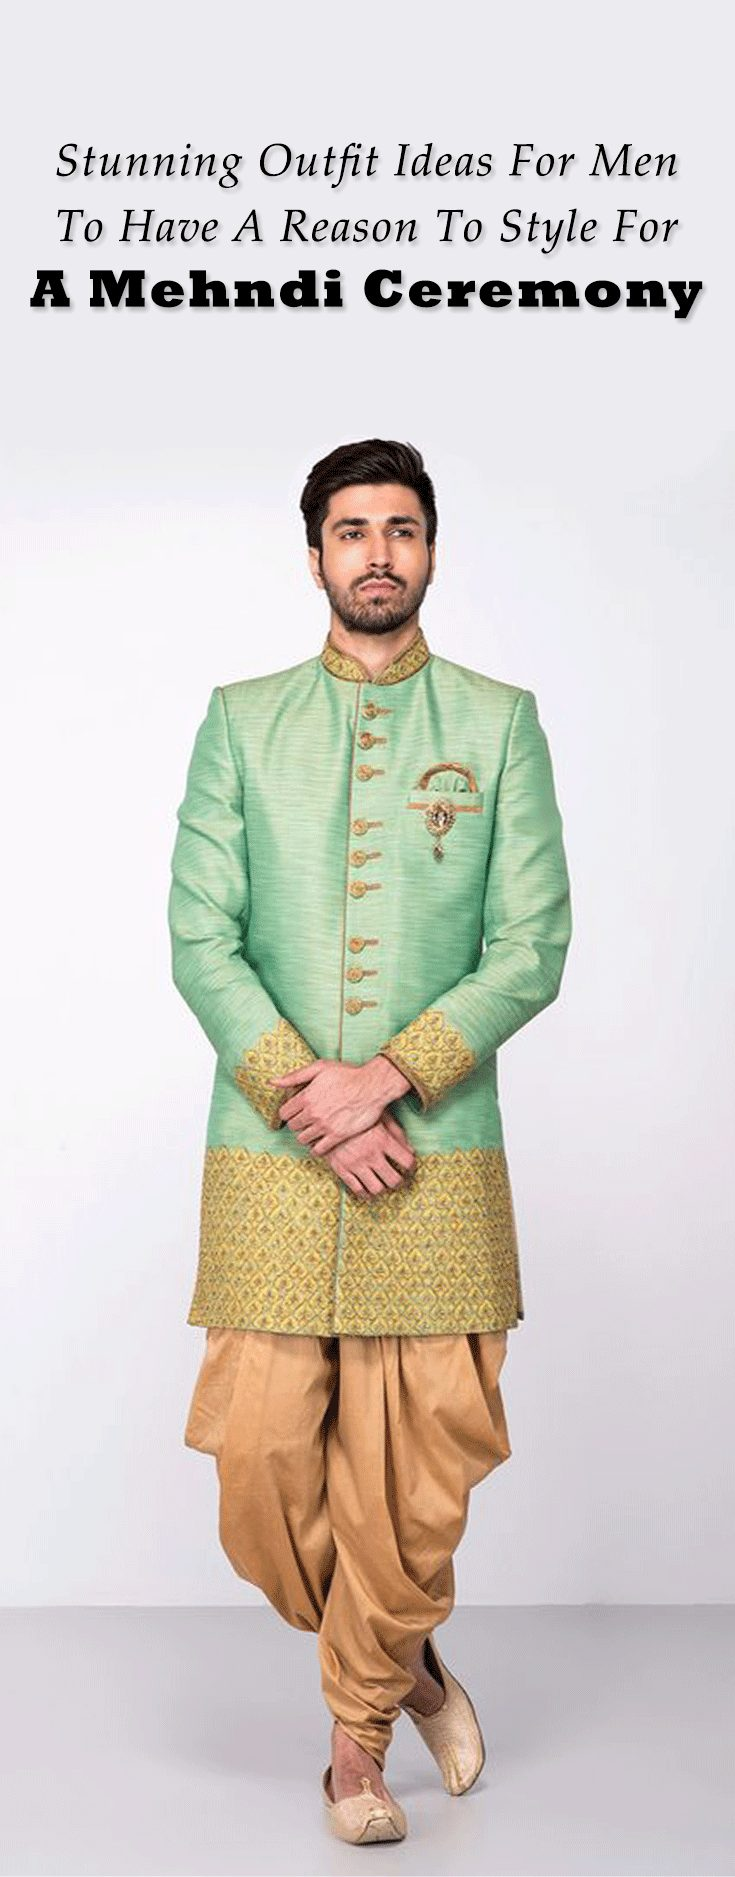 Styling For Mehndi Made Easy With This Style Guide For Men